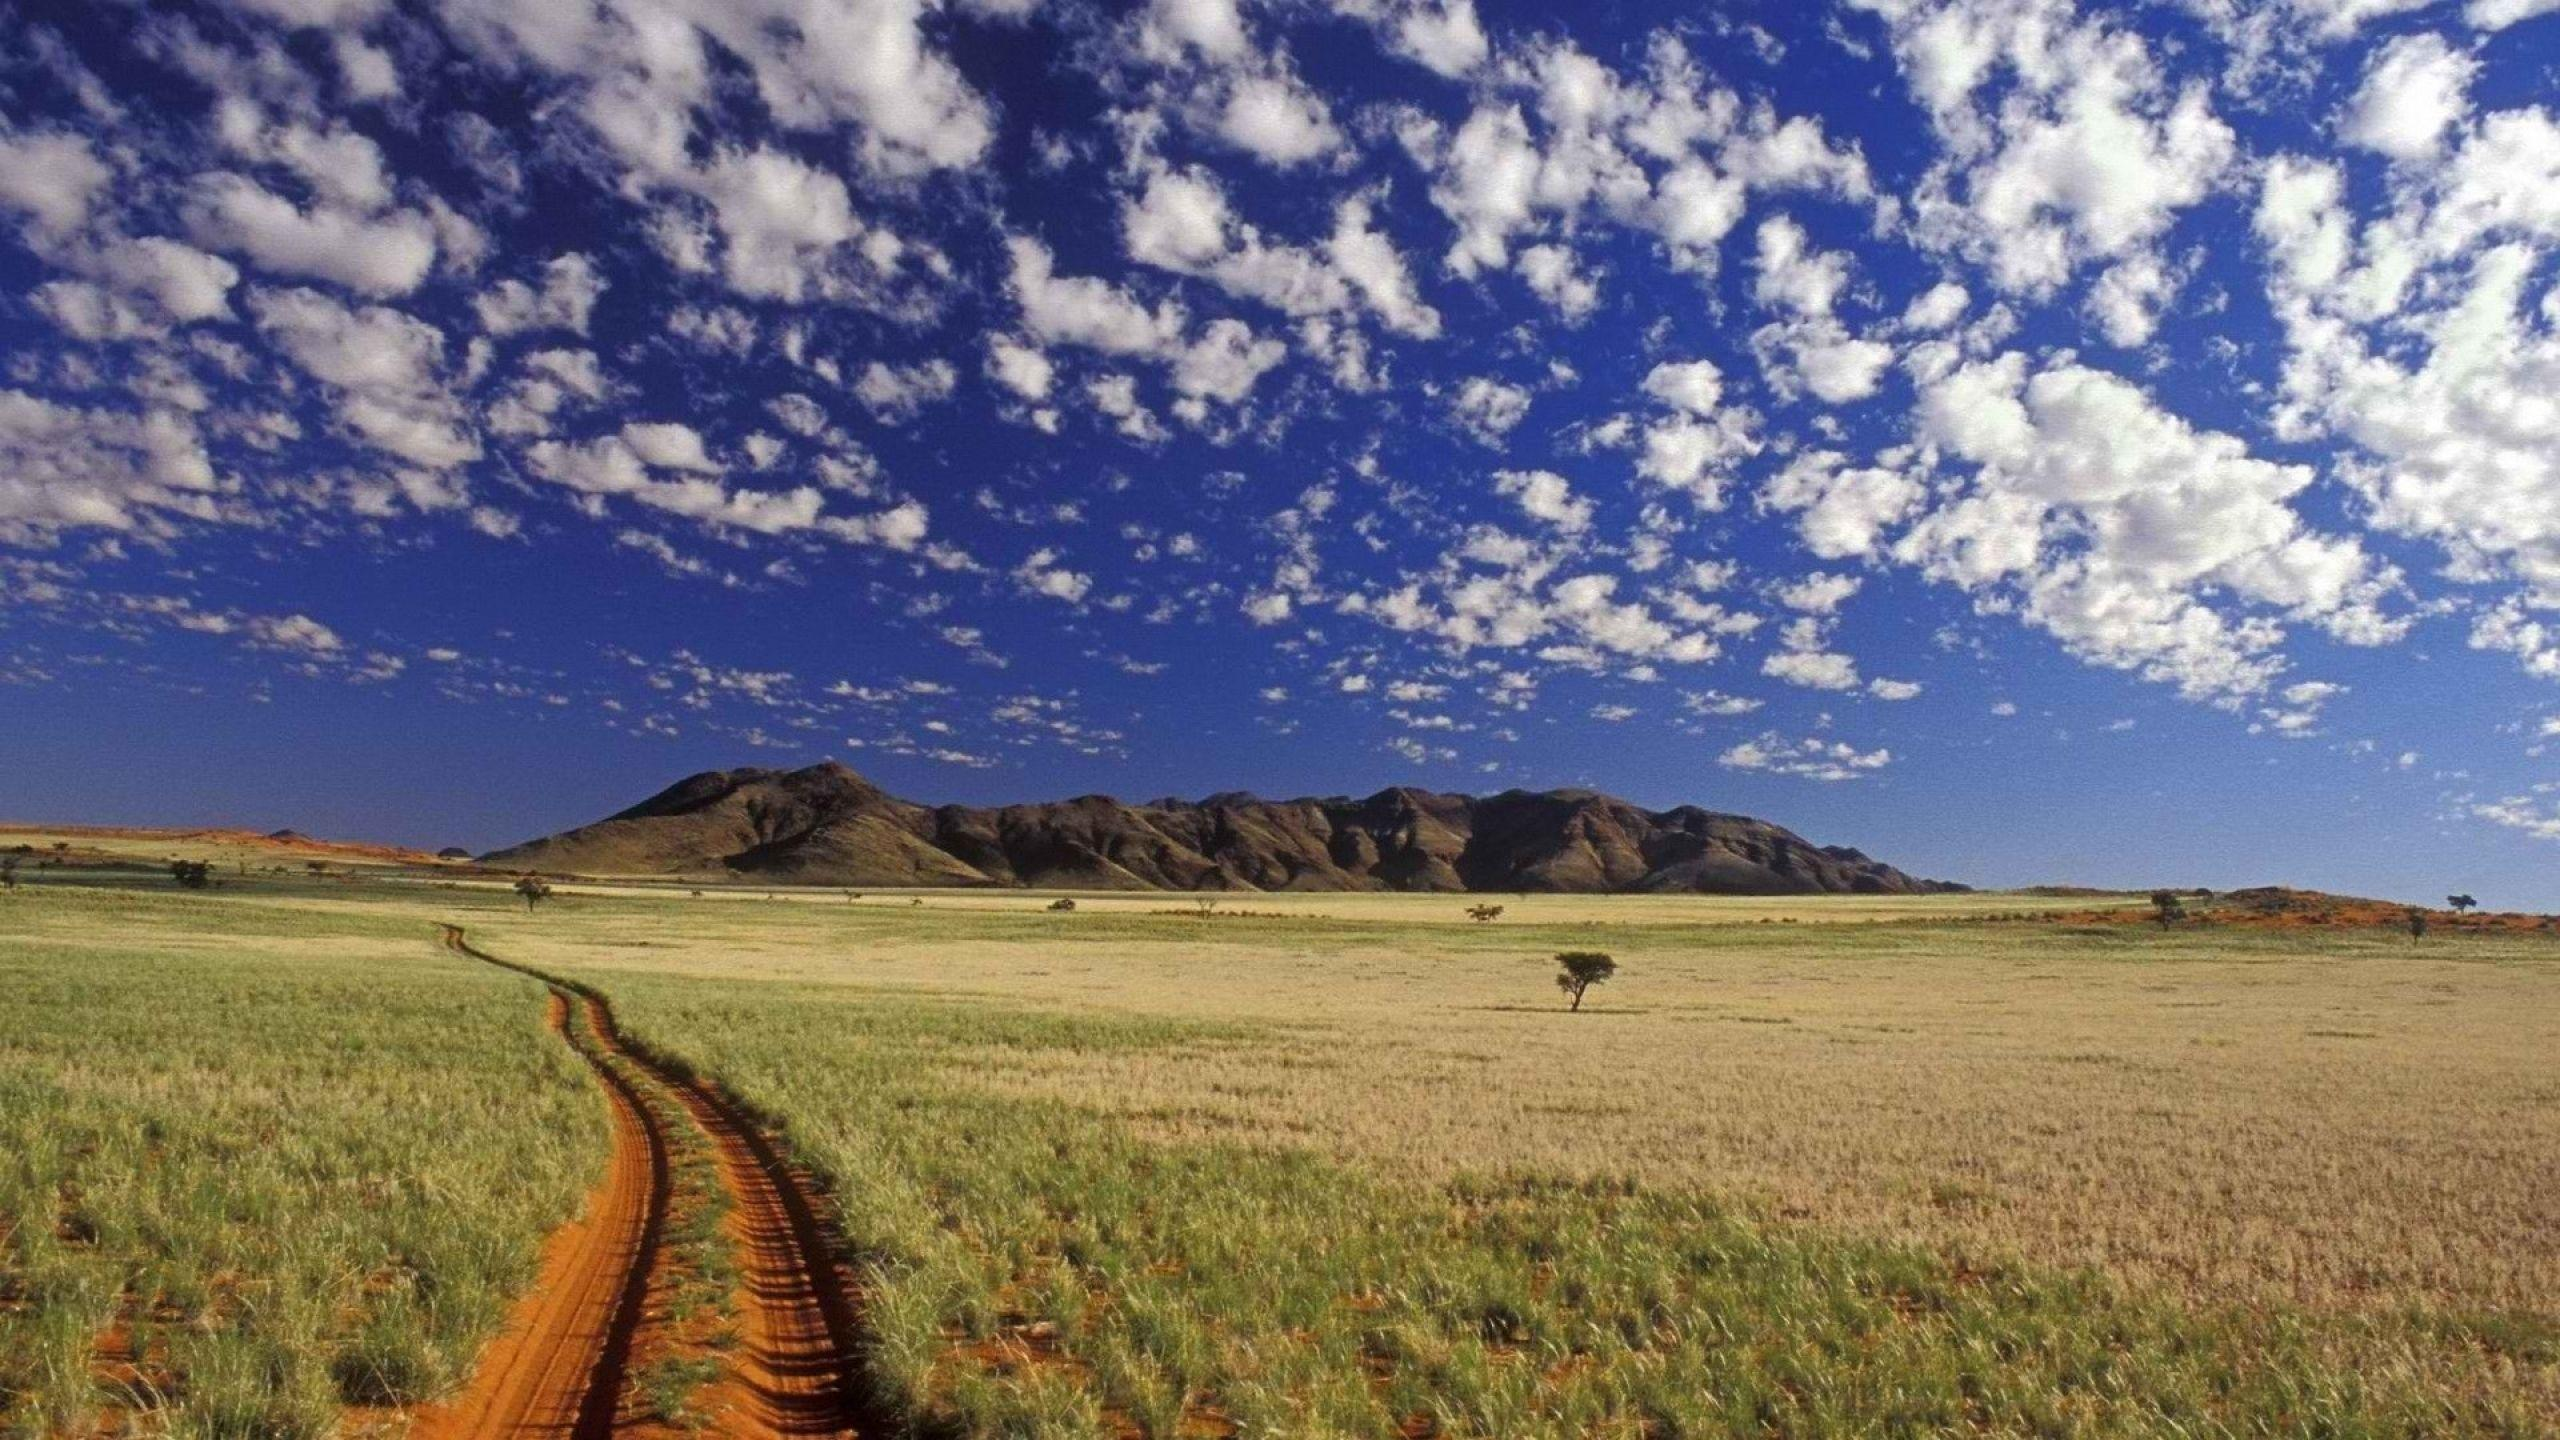 Download Wallpaper 2560x1440 Road, Dirt, Prairie, Clouds, Sky Mac ...